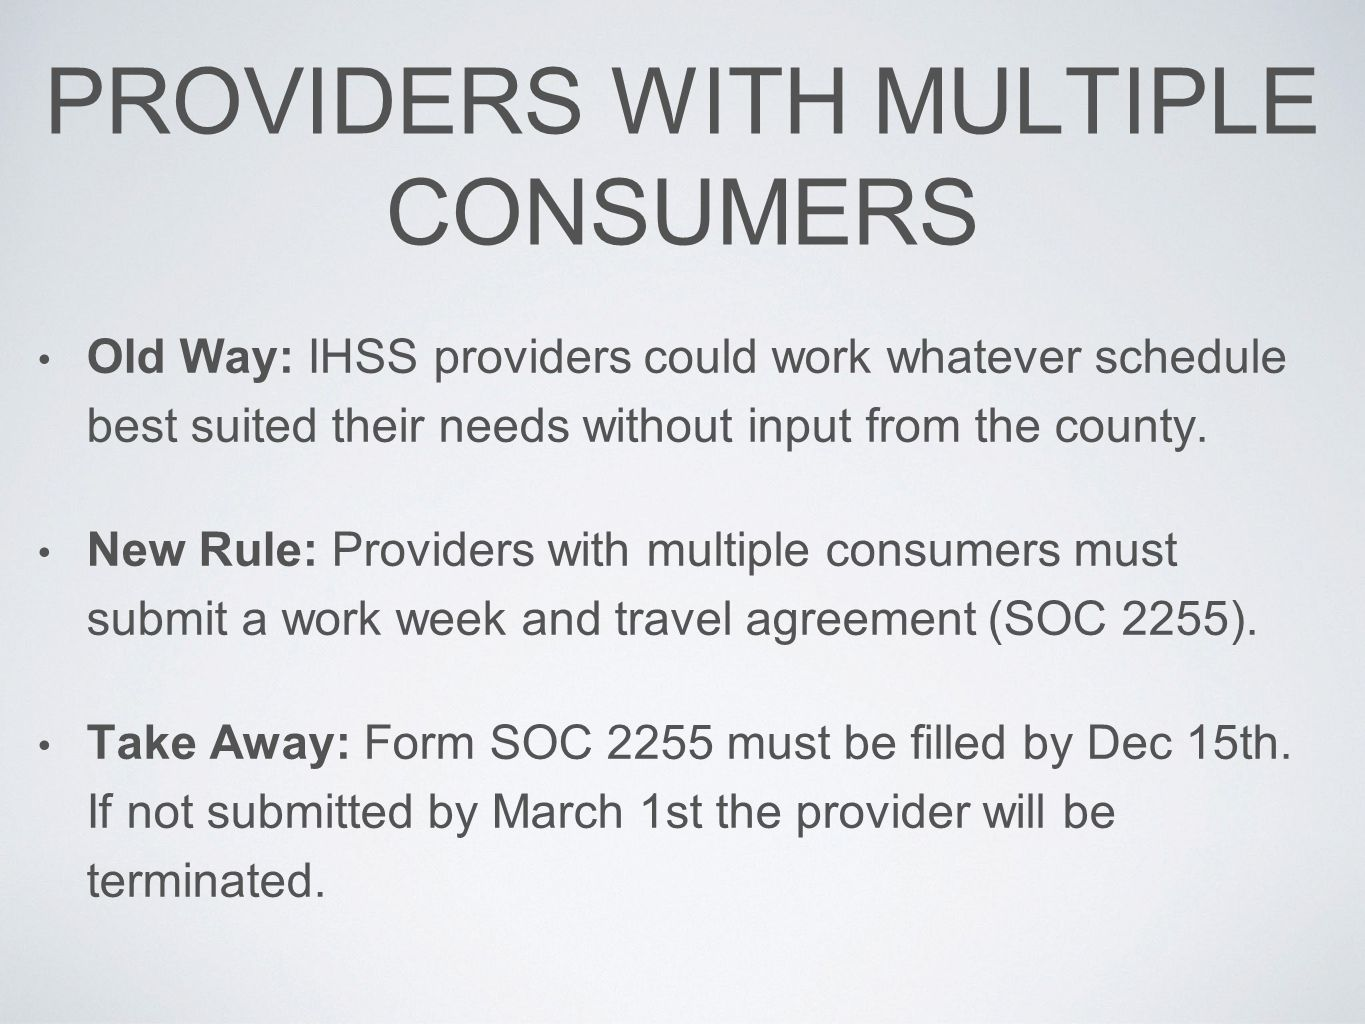 PROVIDERS WITH MULTIPLE CONSUMERS